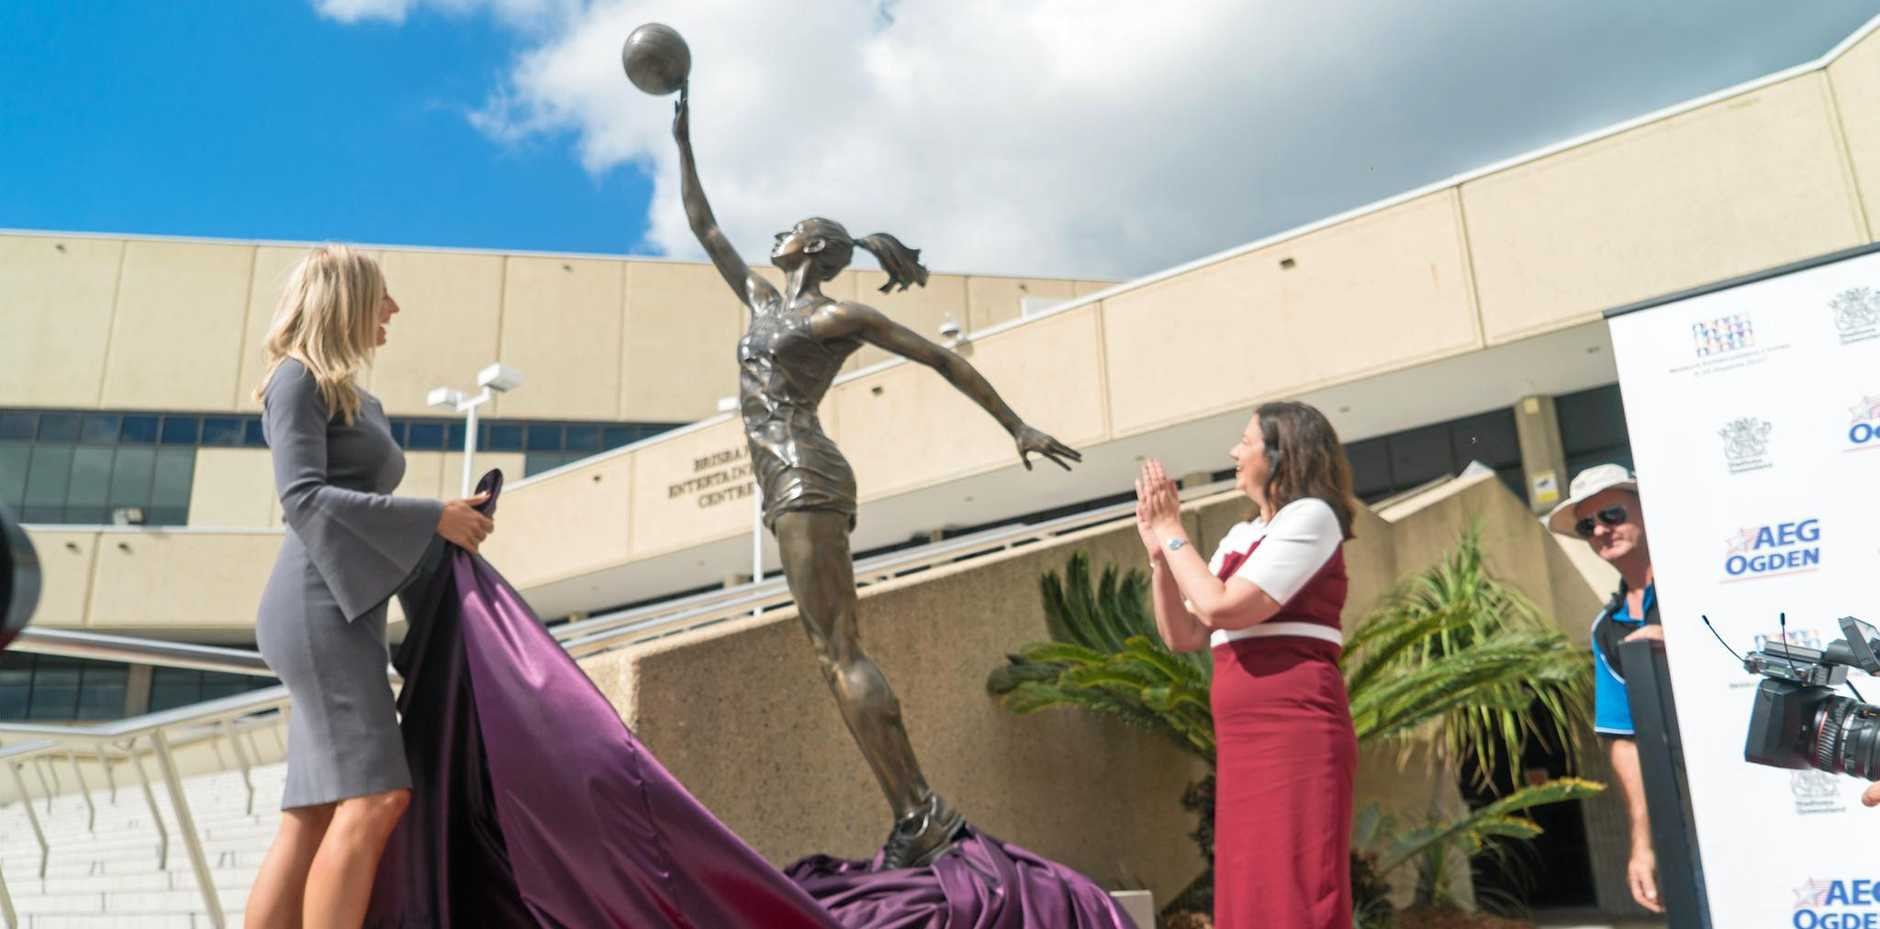 Netballer Laura Geitz and Premier Annastacia Palaszczuk unveil the 2.6 metre statue of Laura in full flight outside the Brisbane Entertainment Centre in Boondall.